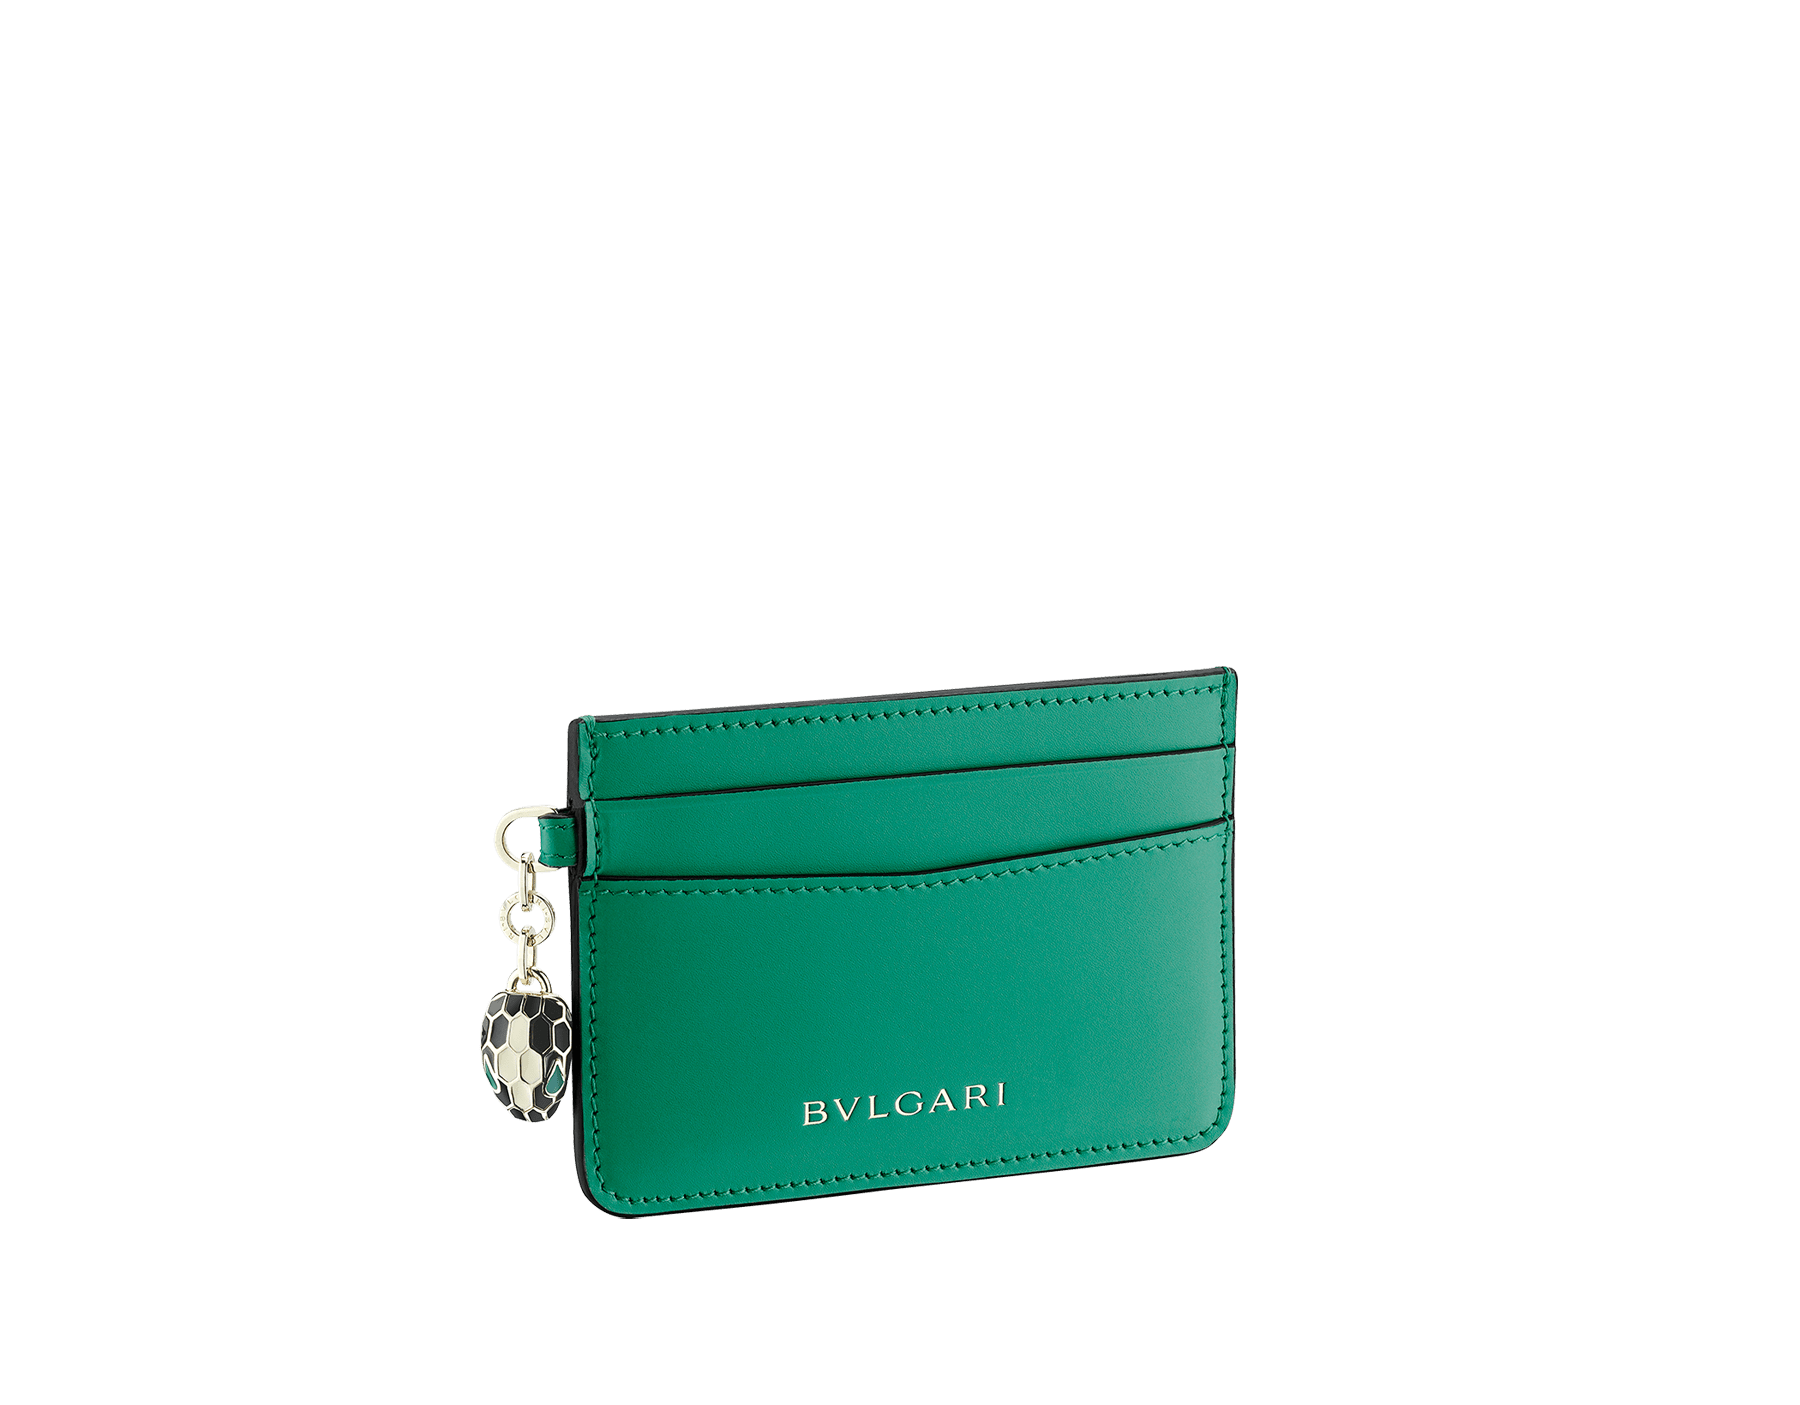 Serpenti Forever card holder in emerald green calf leather. Iconic snakehead charm in black and white agate enamel, with green emerald enamel eyes. 282019 image 1